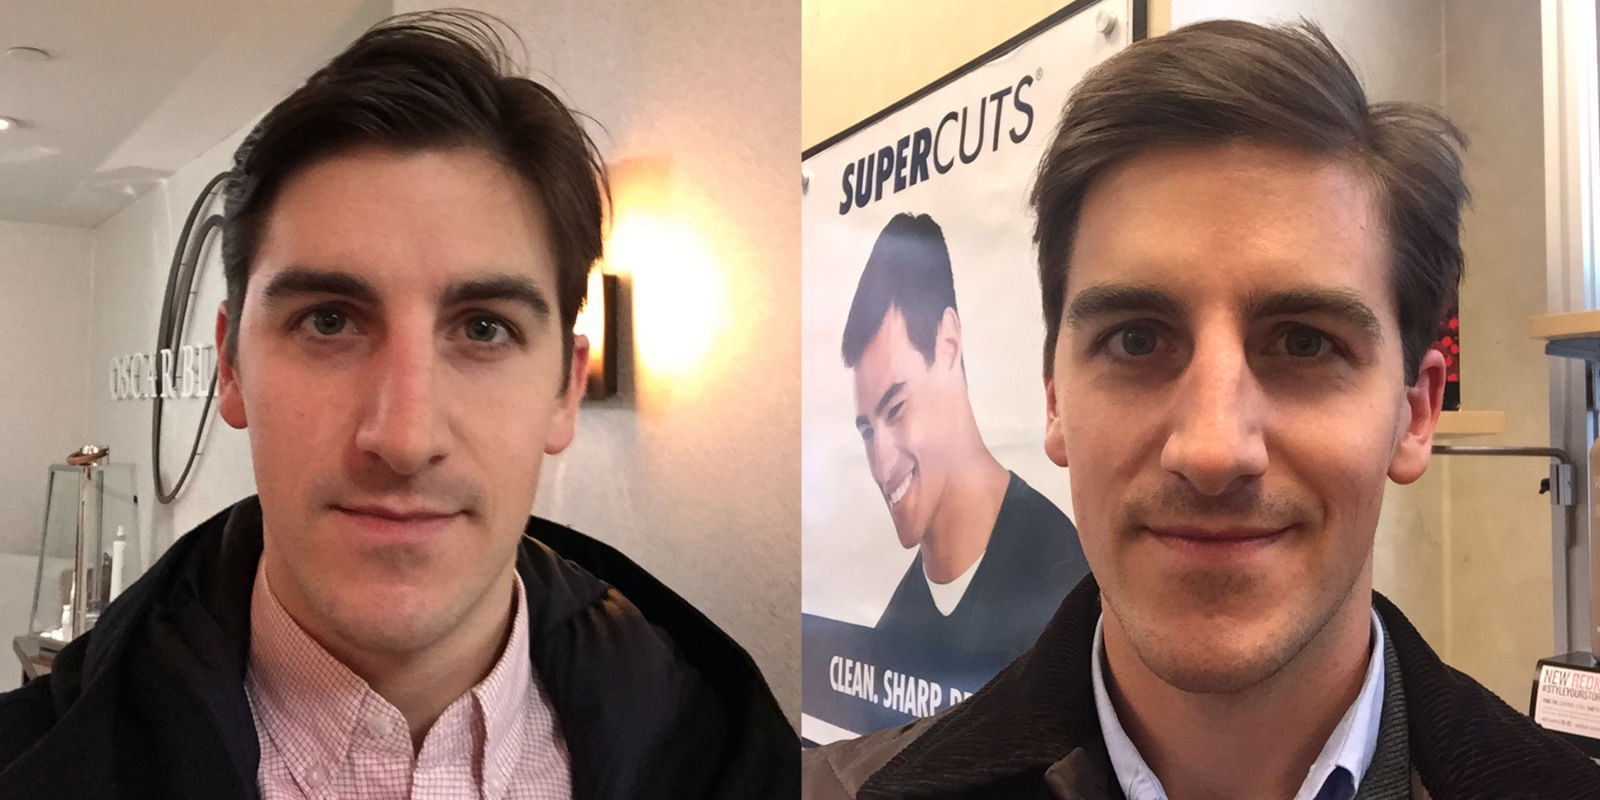 How Much Is A Haircut At Supercuts